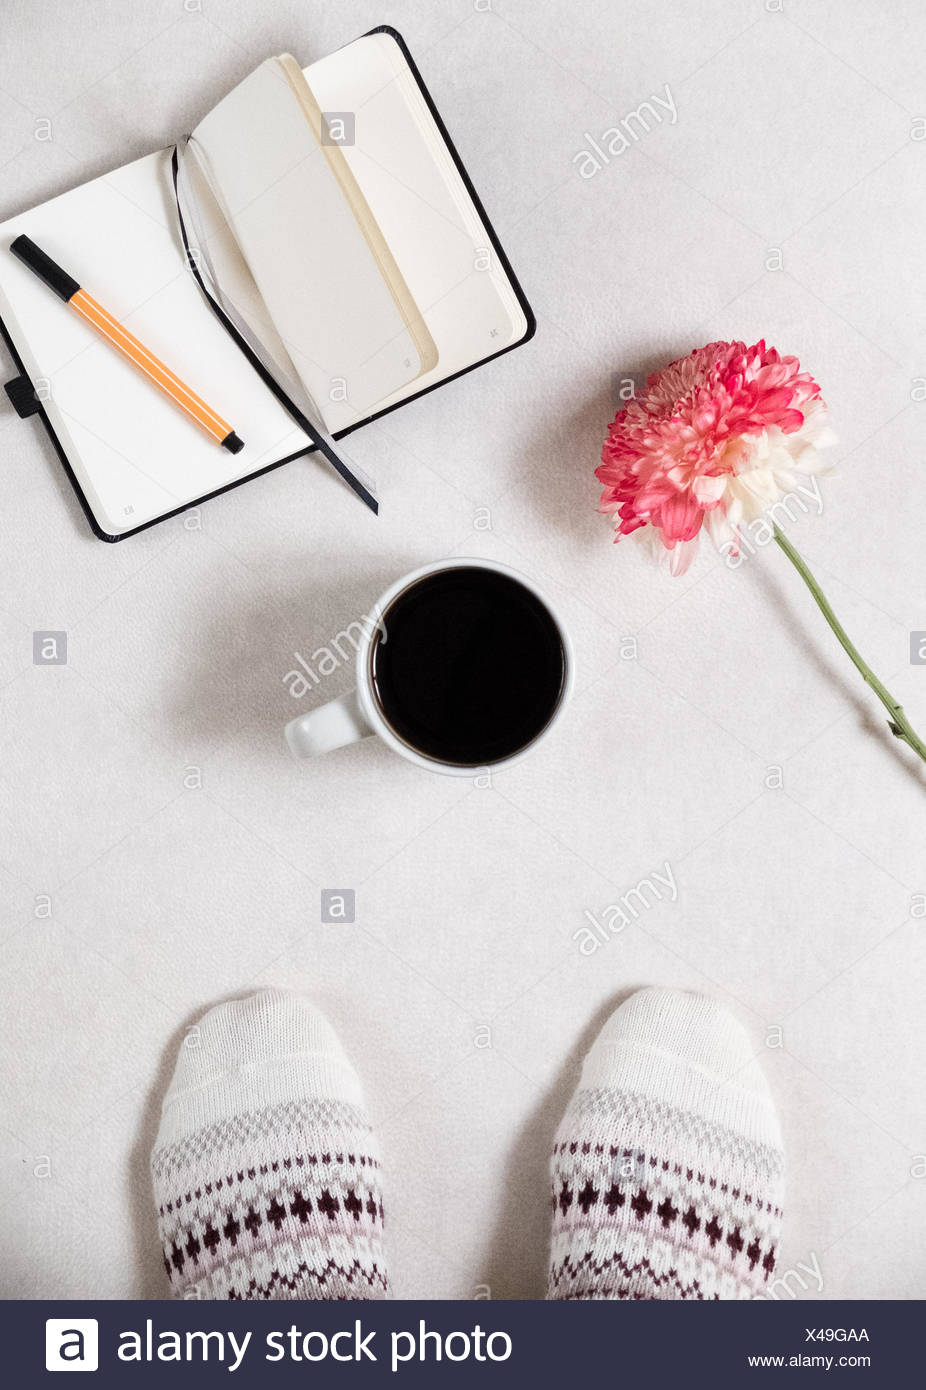 Low Section Of Person Standing By Black Coffee And Diary With Pen On White Background - Stock Image